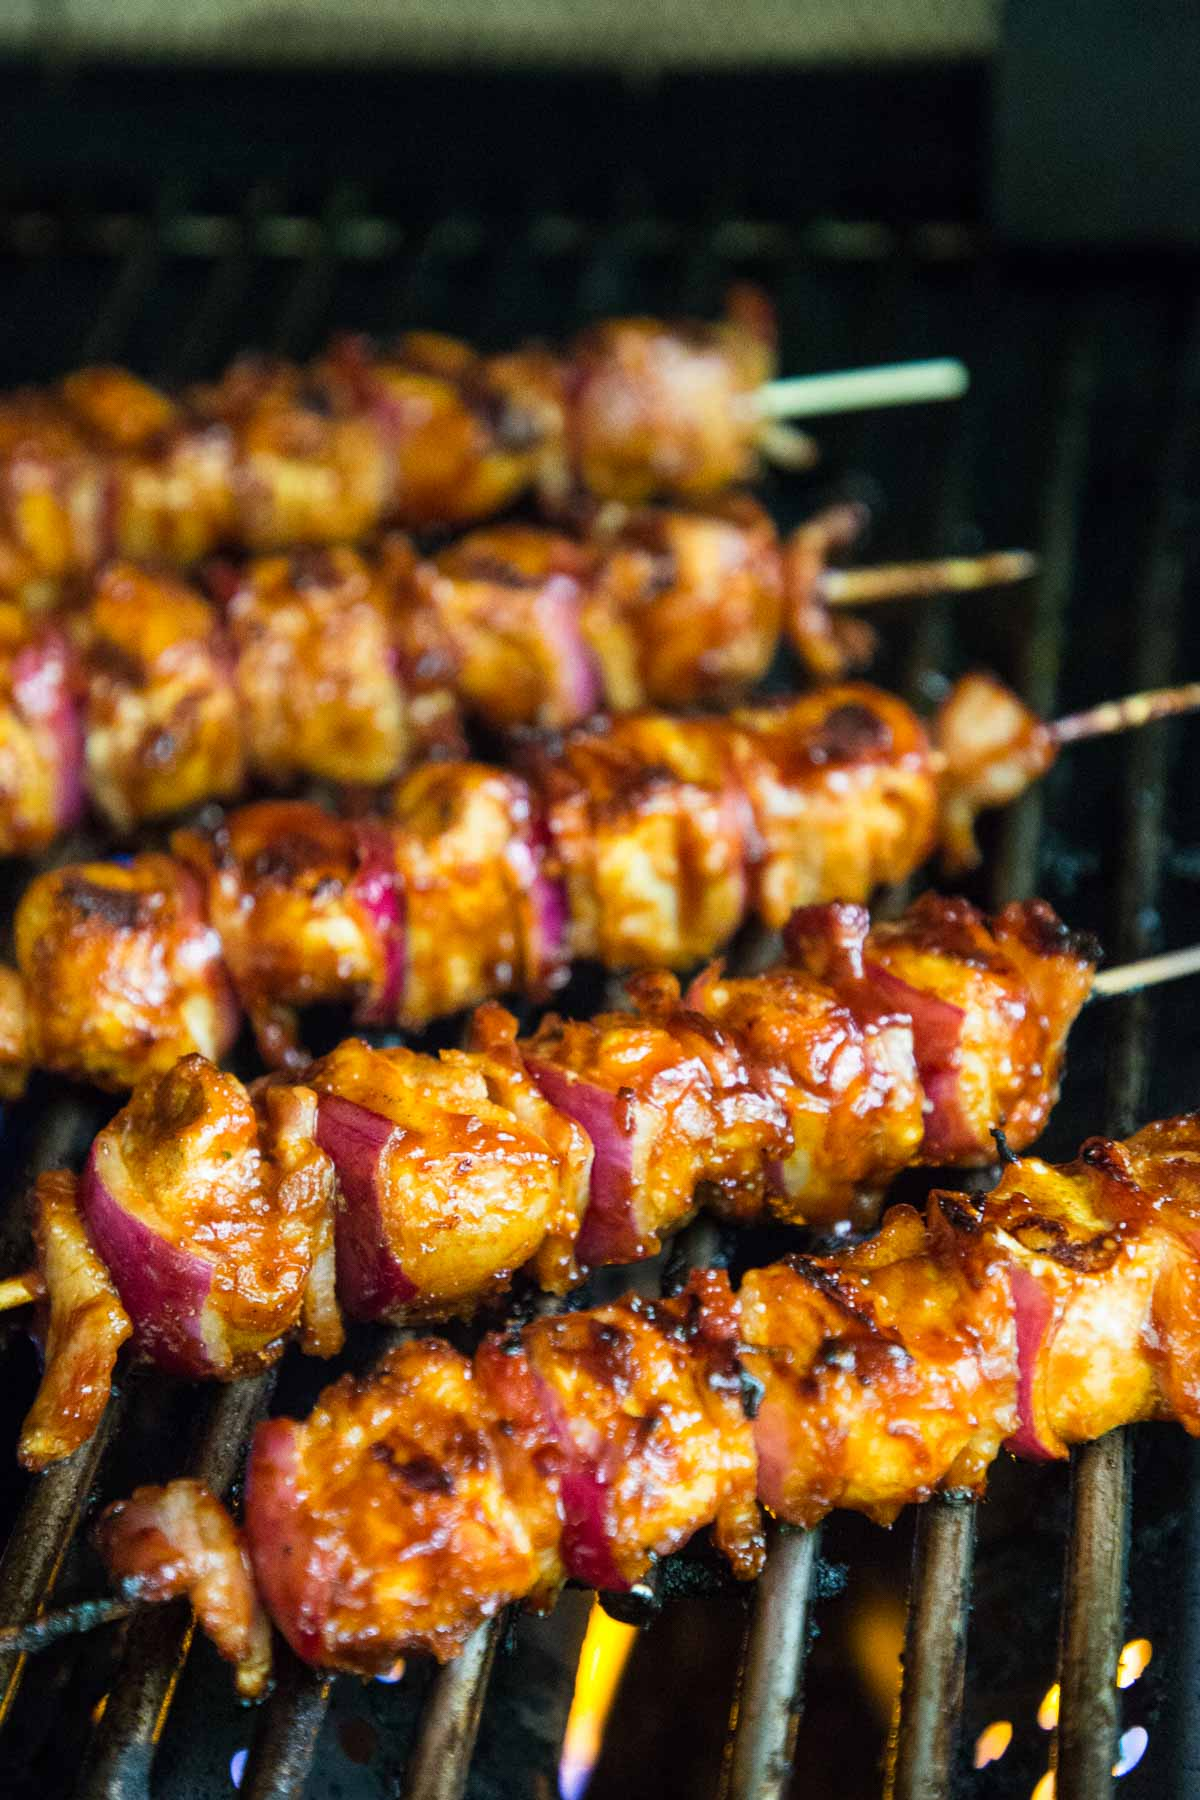 Vertical photo of Barbecued Chicken Skewers on the grill.